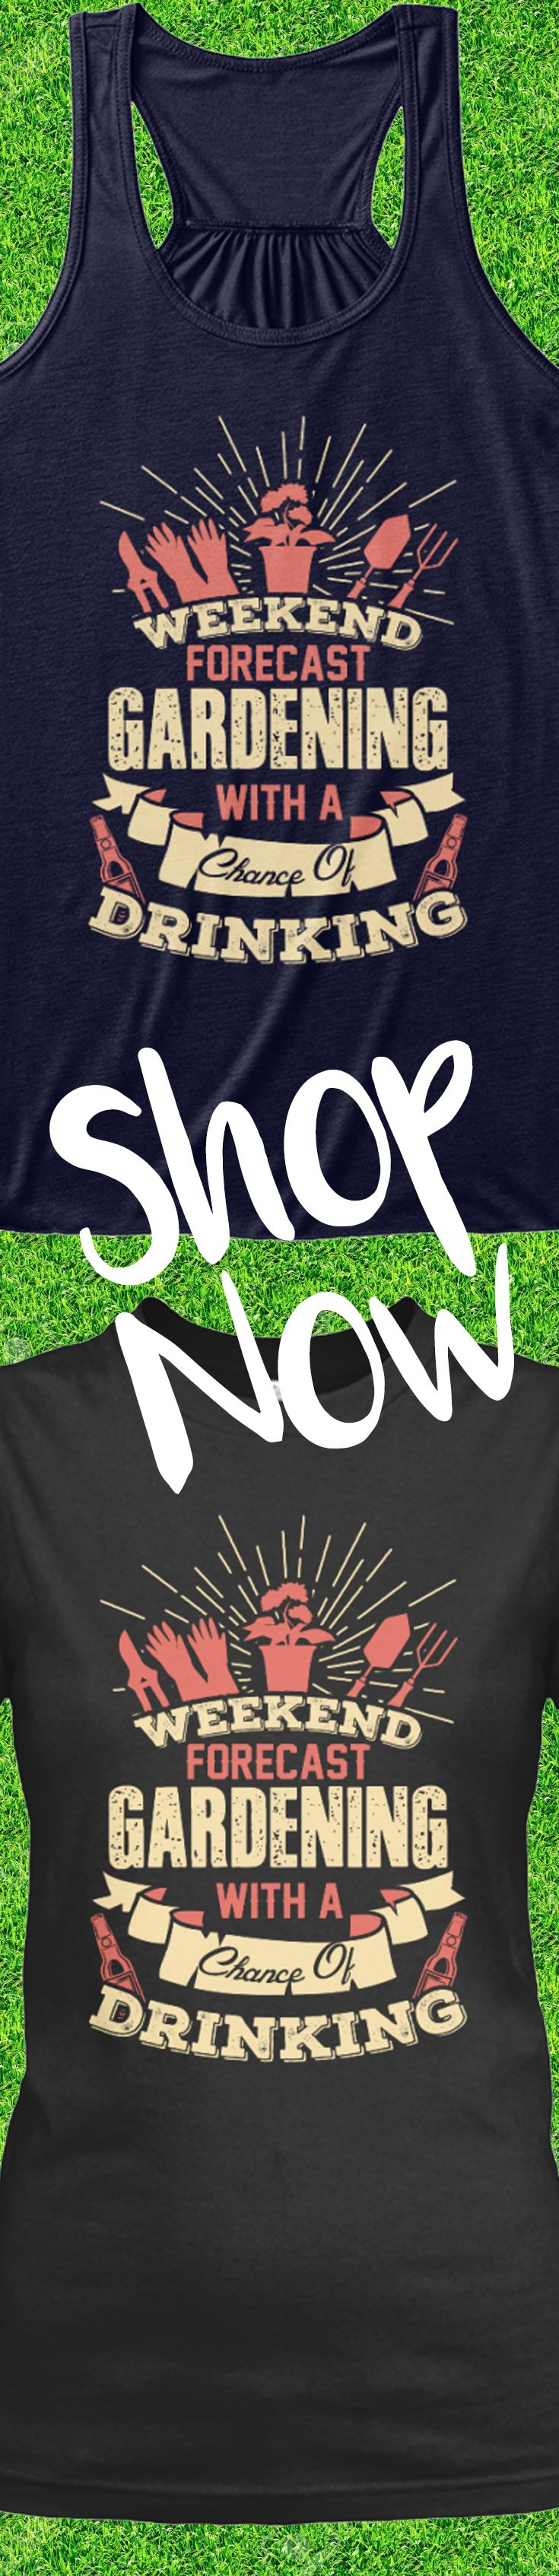 Love gardening?! Check out this awesome gardening t-shirt that you will not find anywhere else. Not sold in stores and only 2 days left for free shipping! Grab yours or gift it to a friend, you will both love it